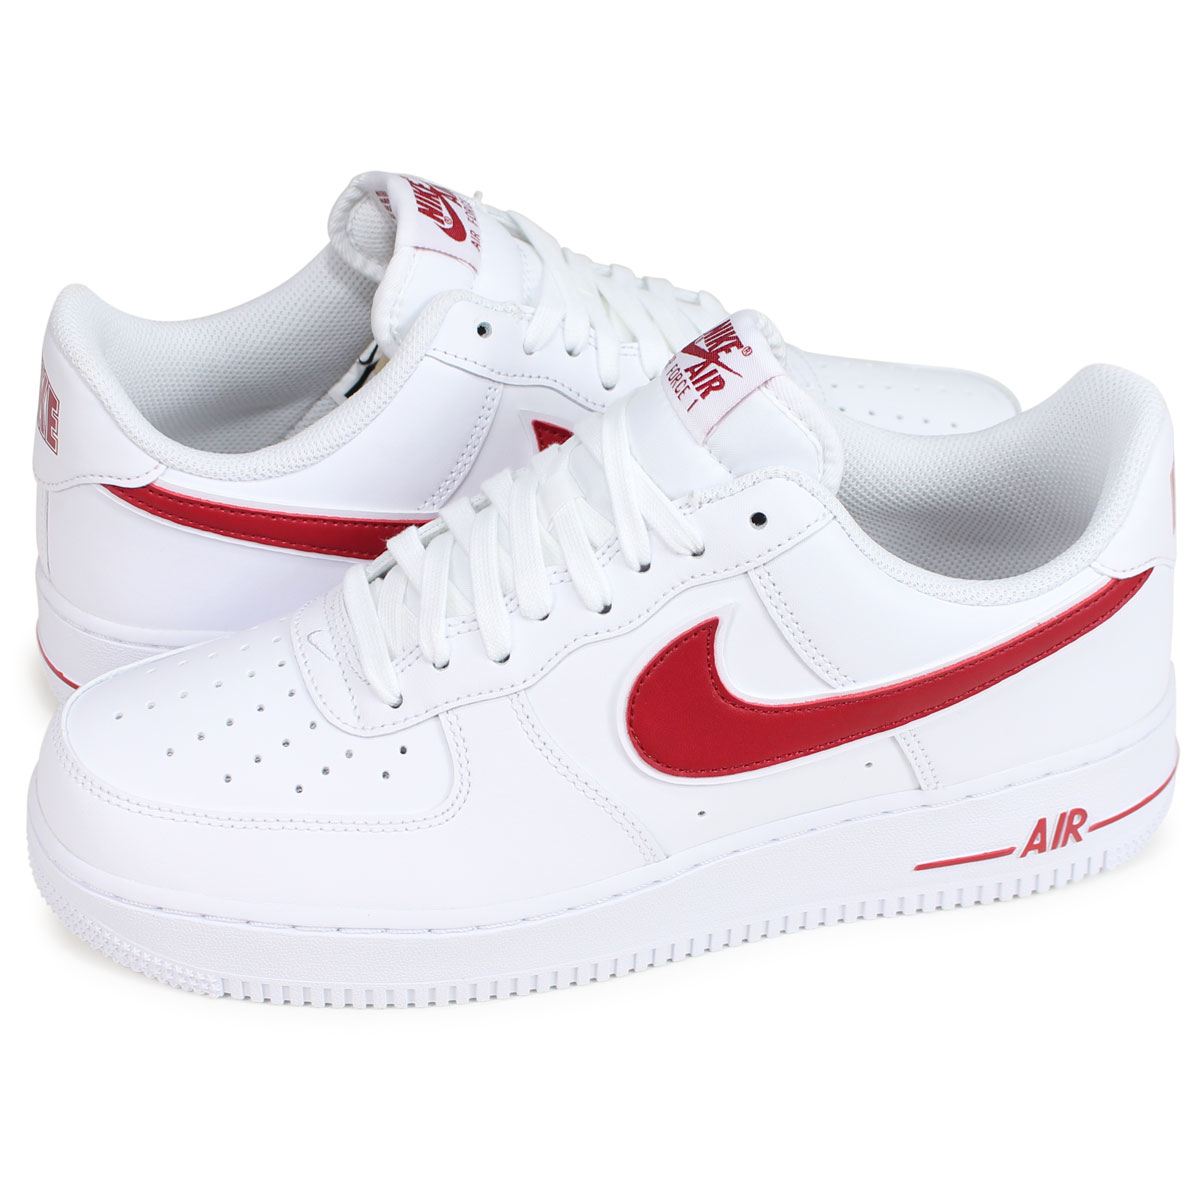 new arrival 71f94 28ba1 Nike NIKE air force 1 sneakers men AIR FORCE 1 07 3 white AO2423-102 load  planned Shinnyu load in reservation product 214 containing